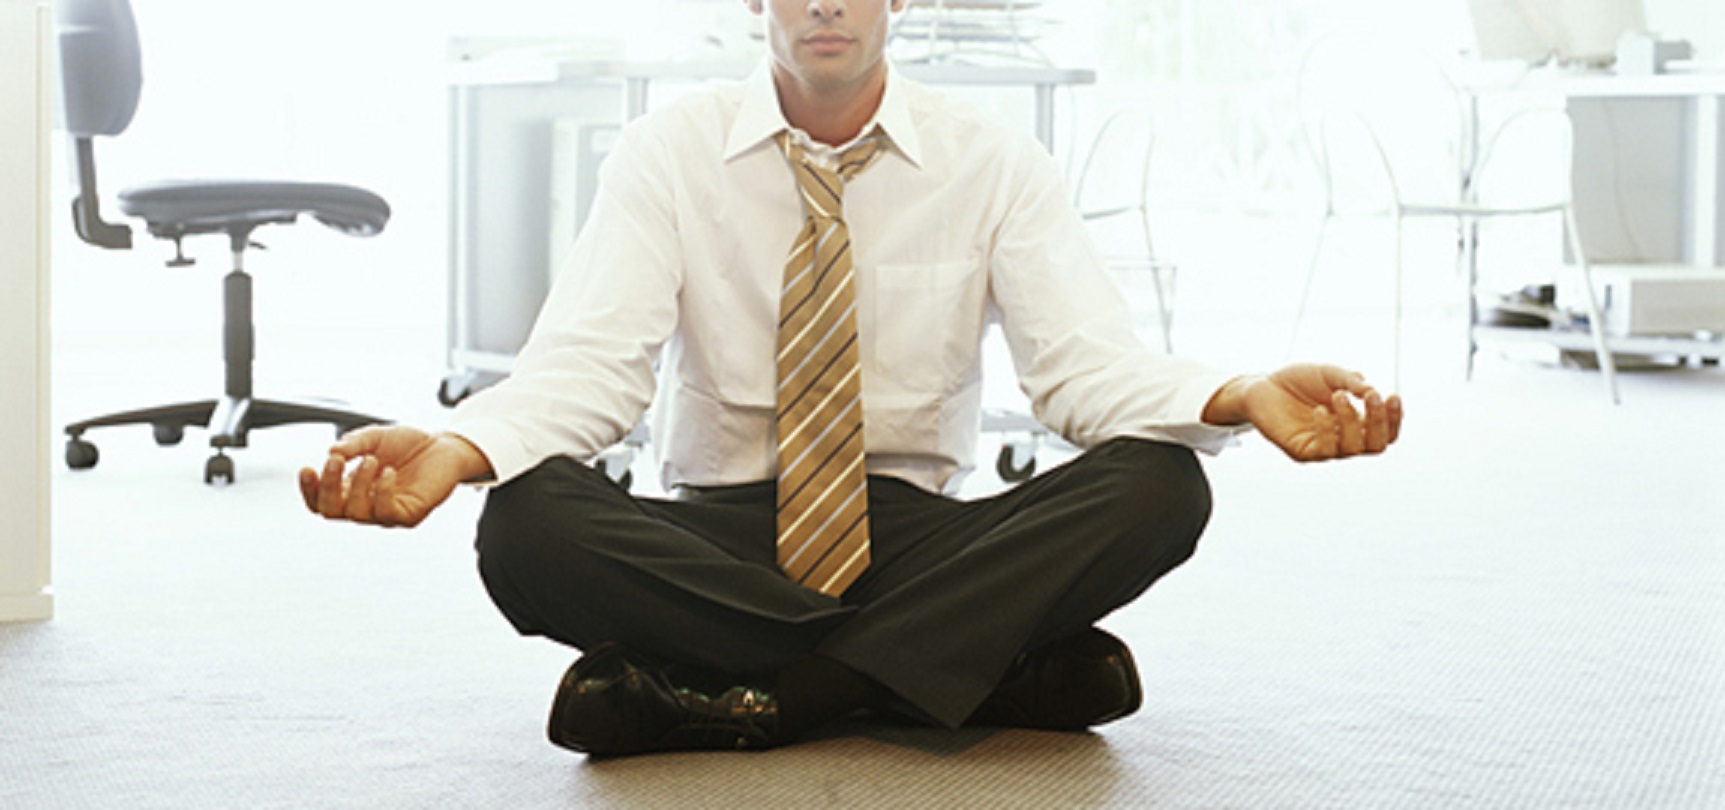 meditating-businessman_pan_11309